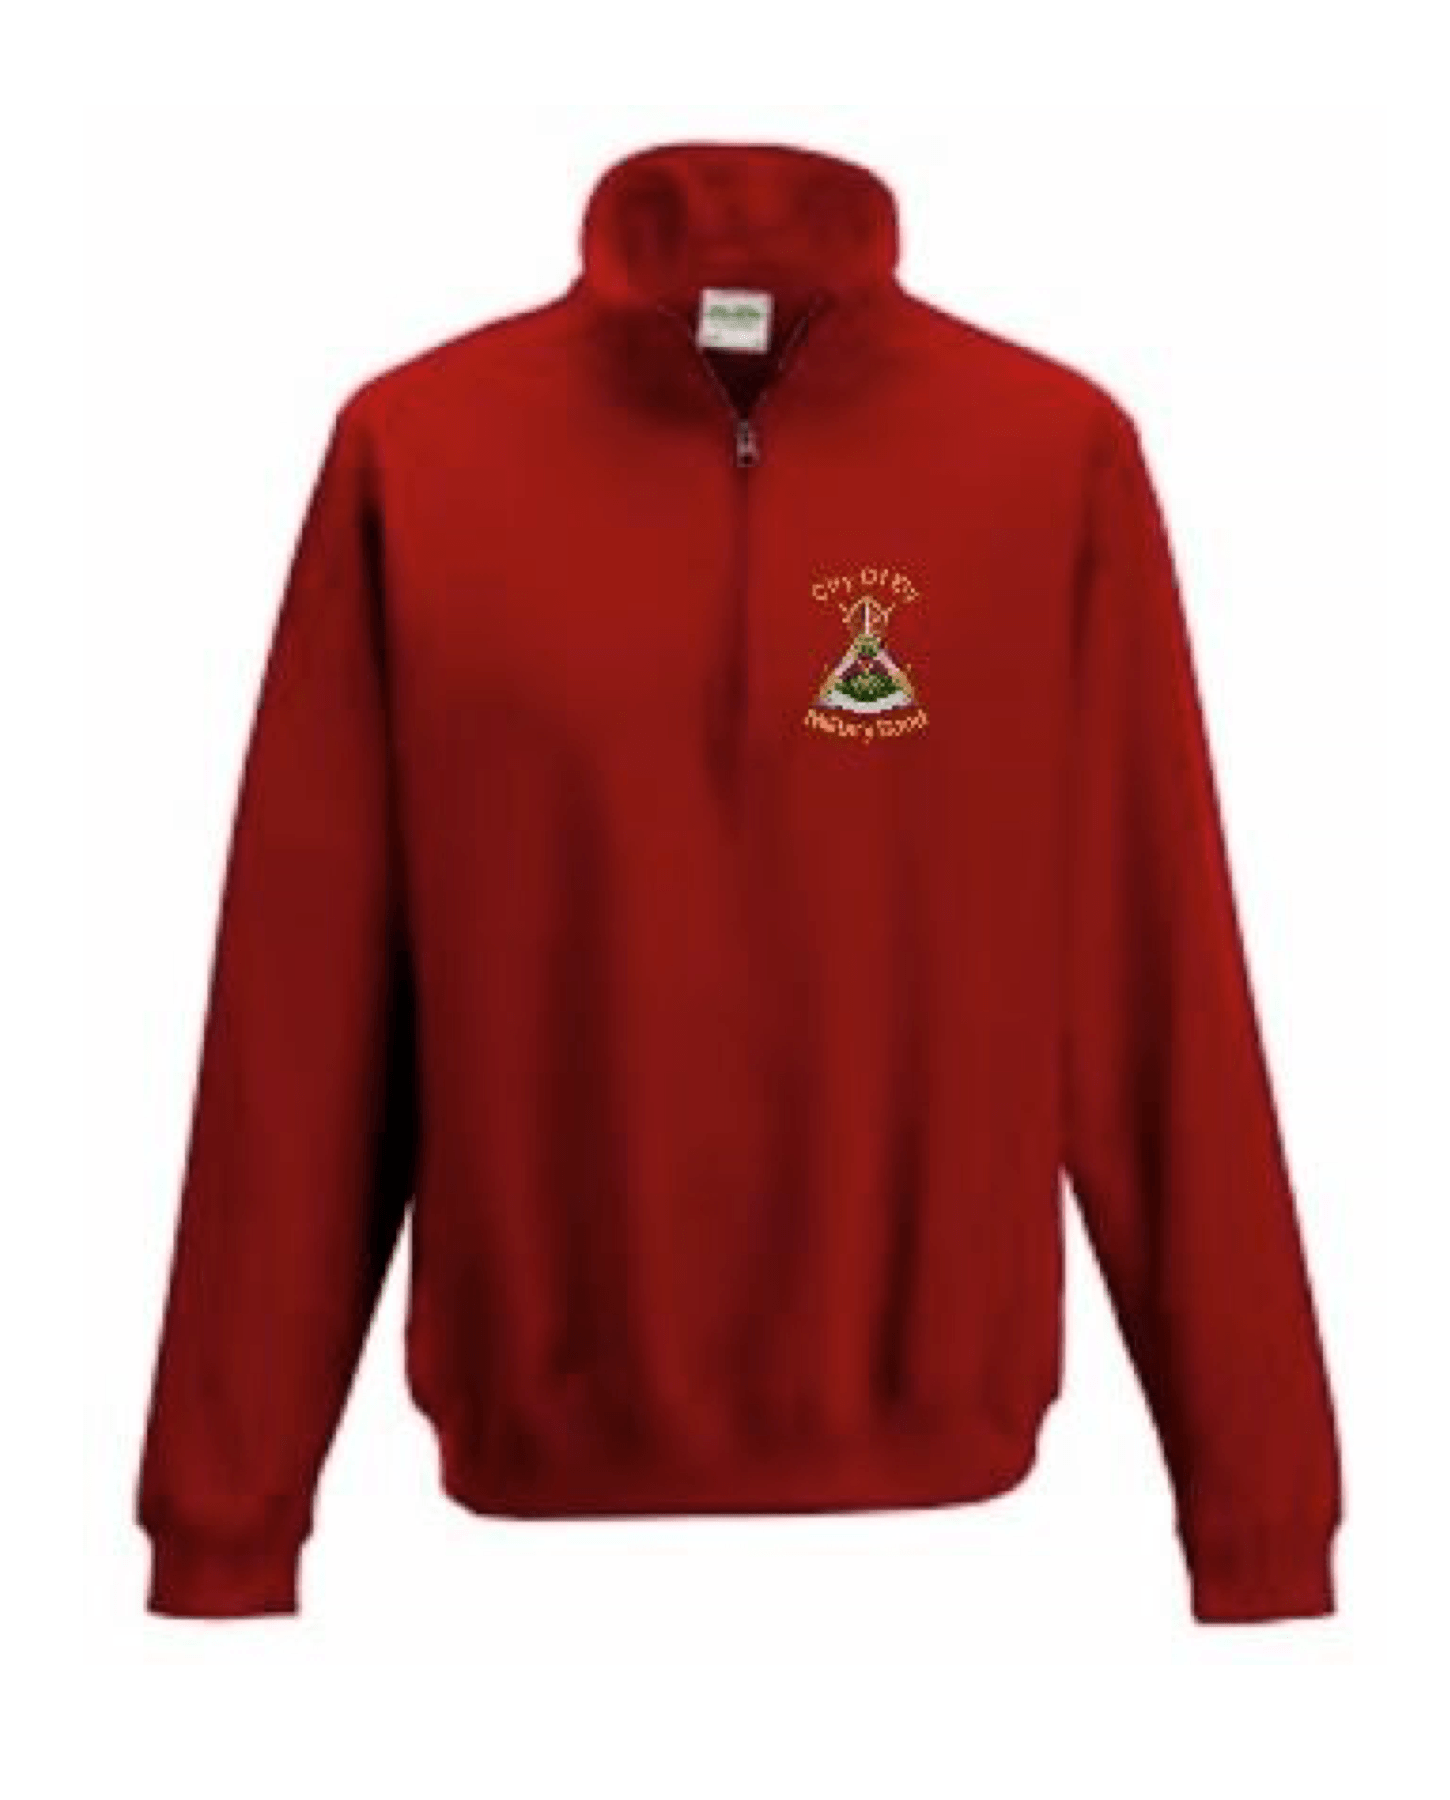 Ely Military Band – Sweater 1/4 Zip